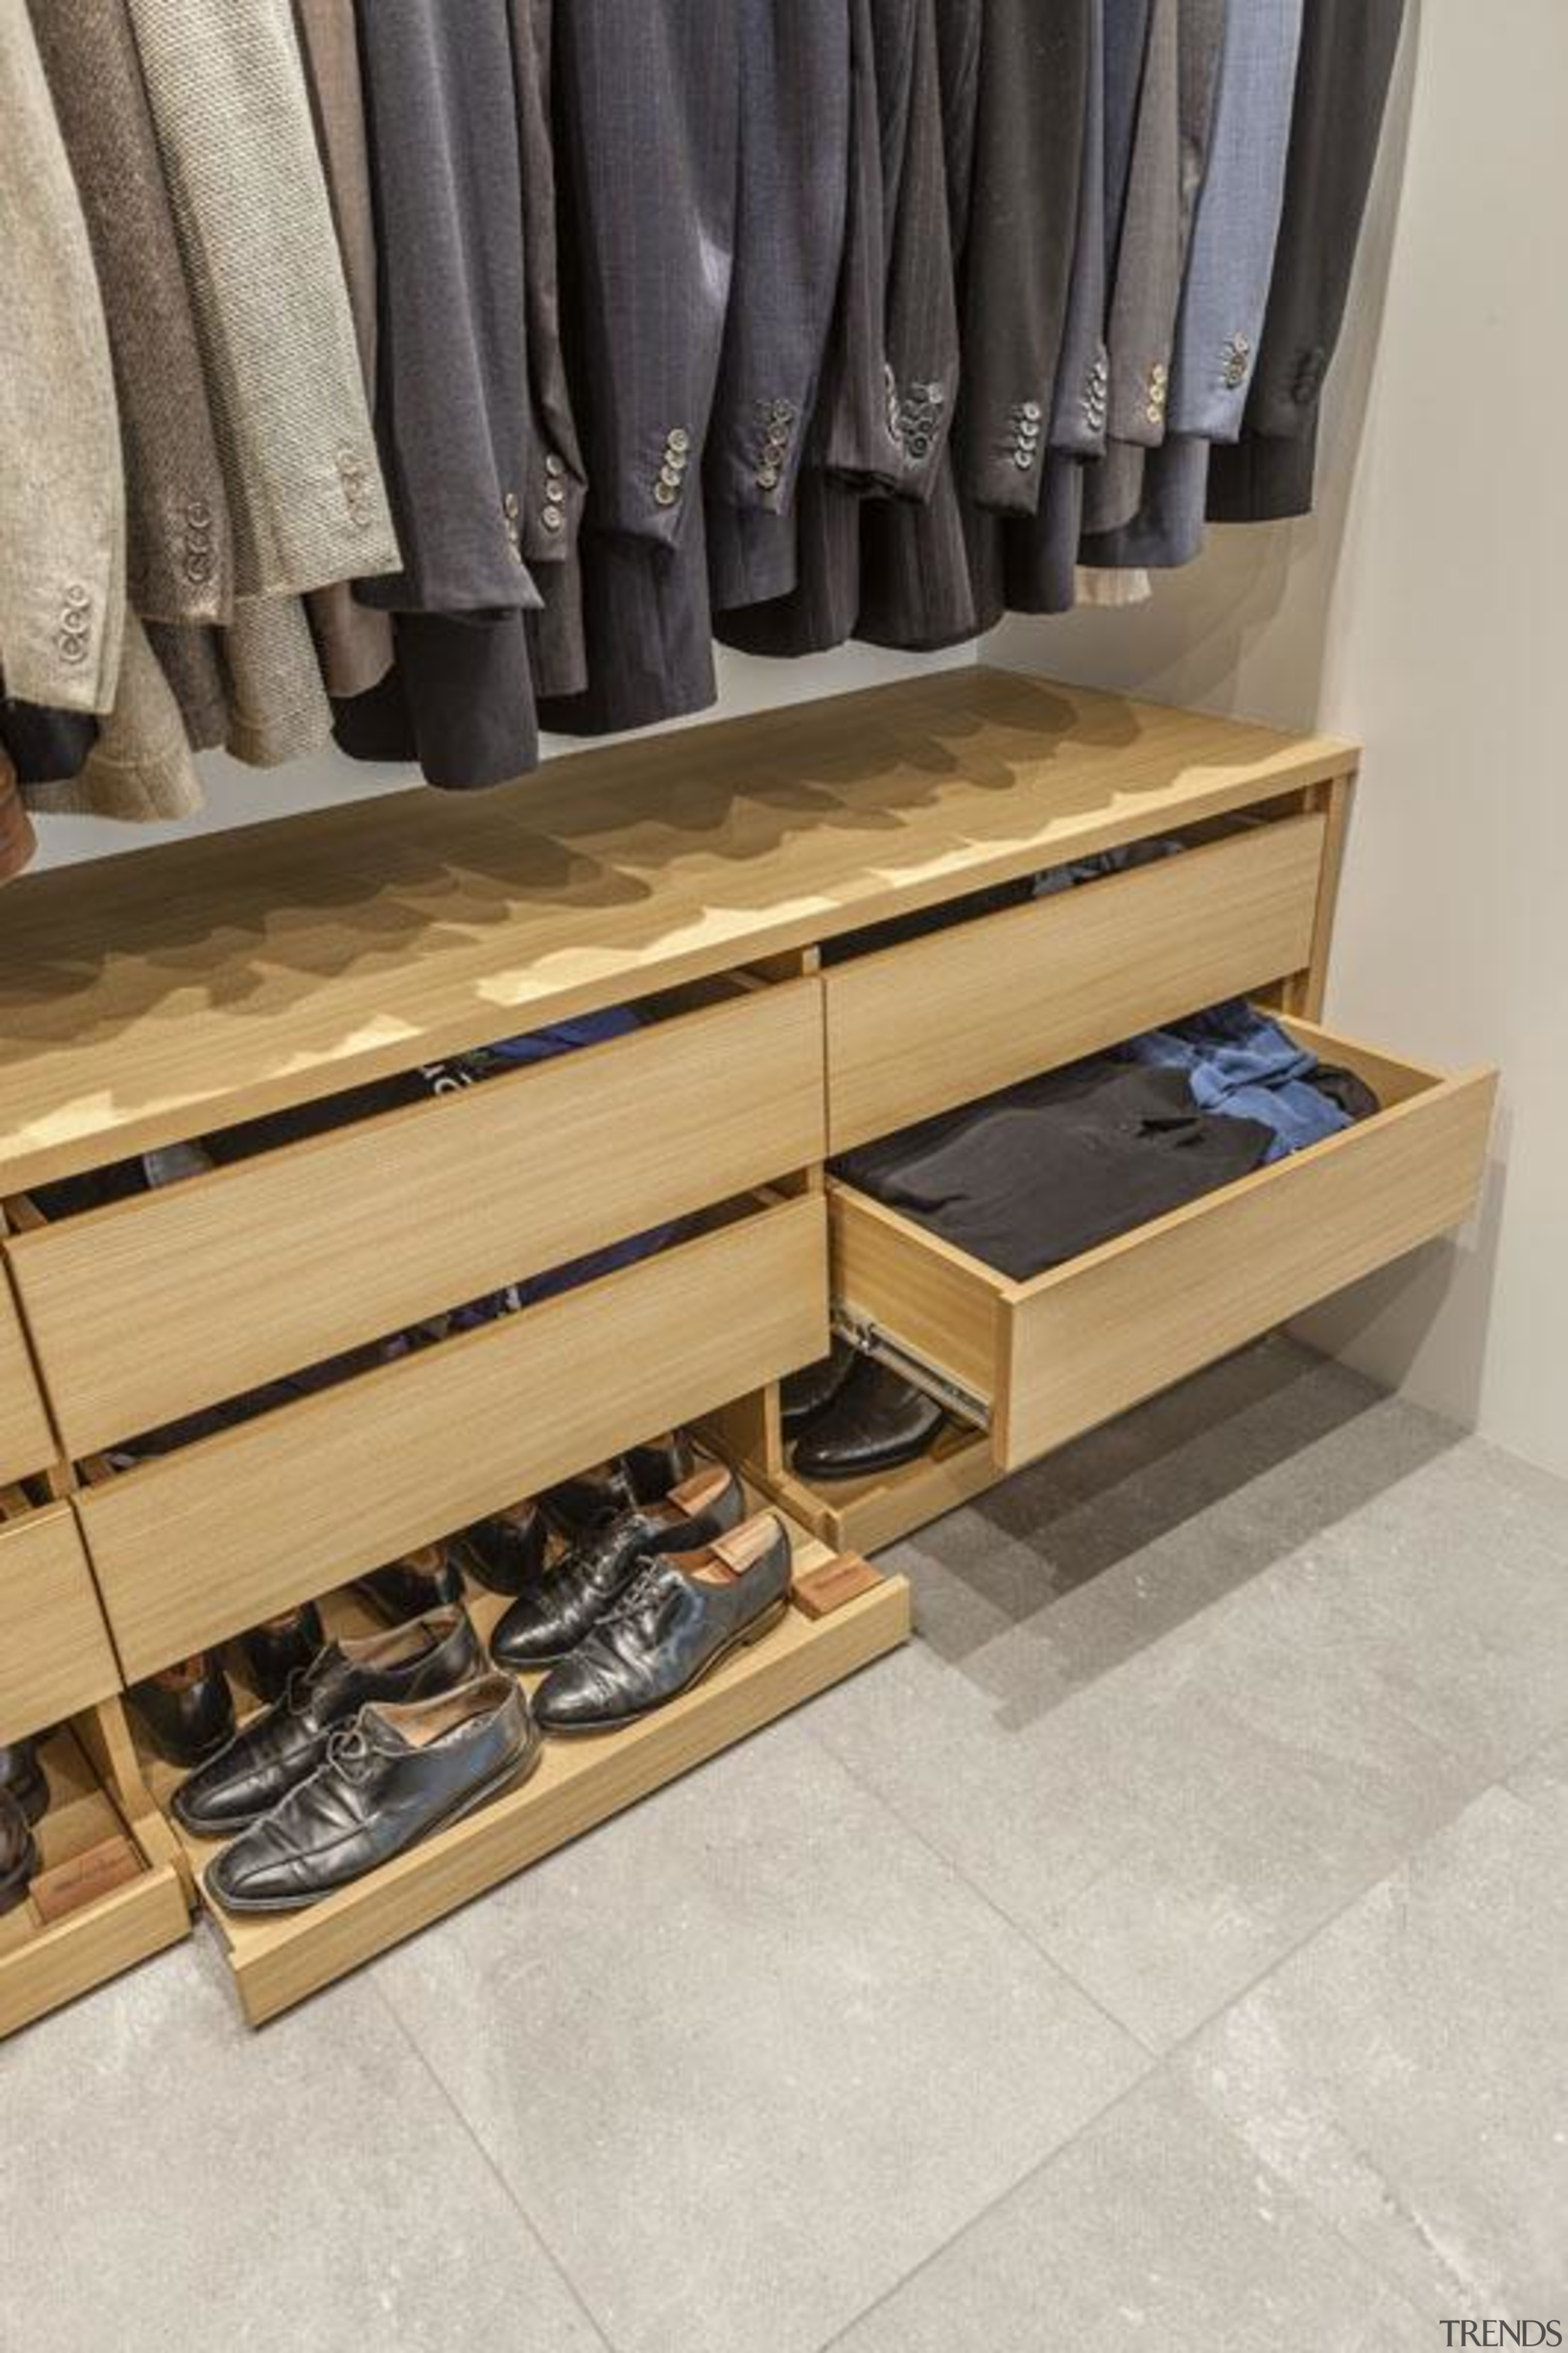 Wardrobe - drawer | floor | flooring | drawer, floor, flooring, furniture, wood, gray